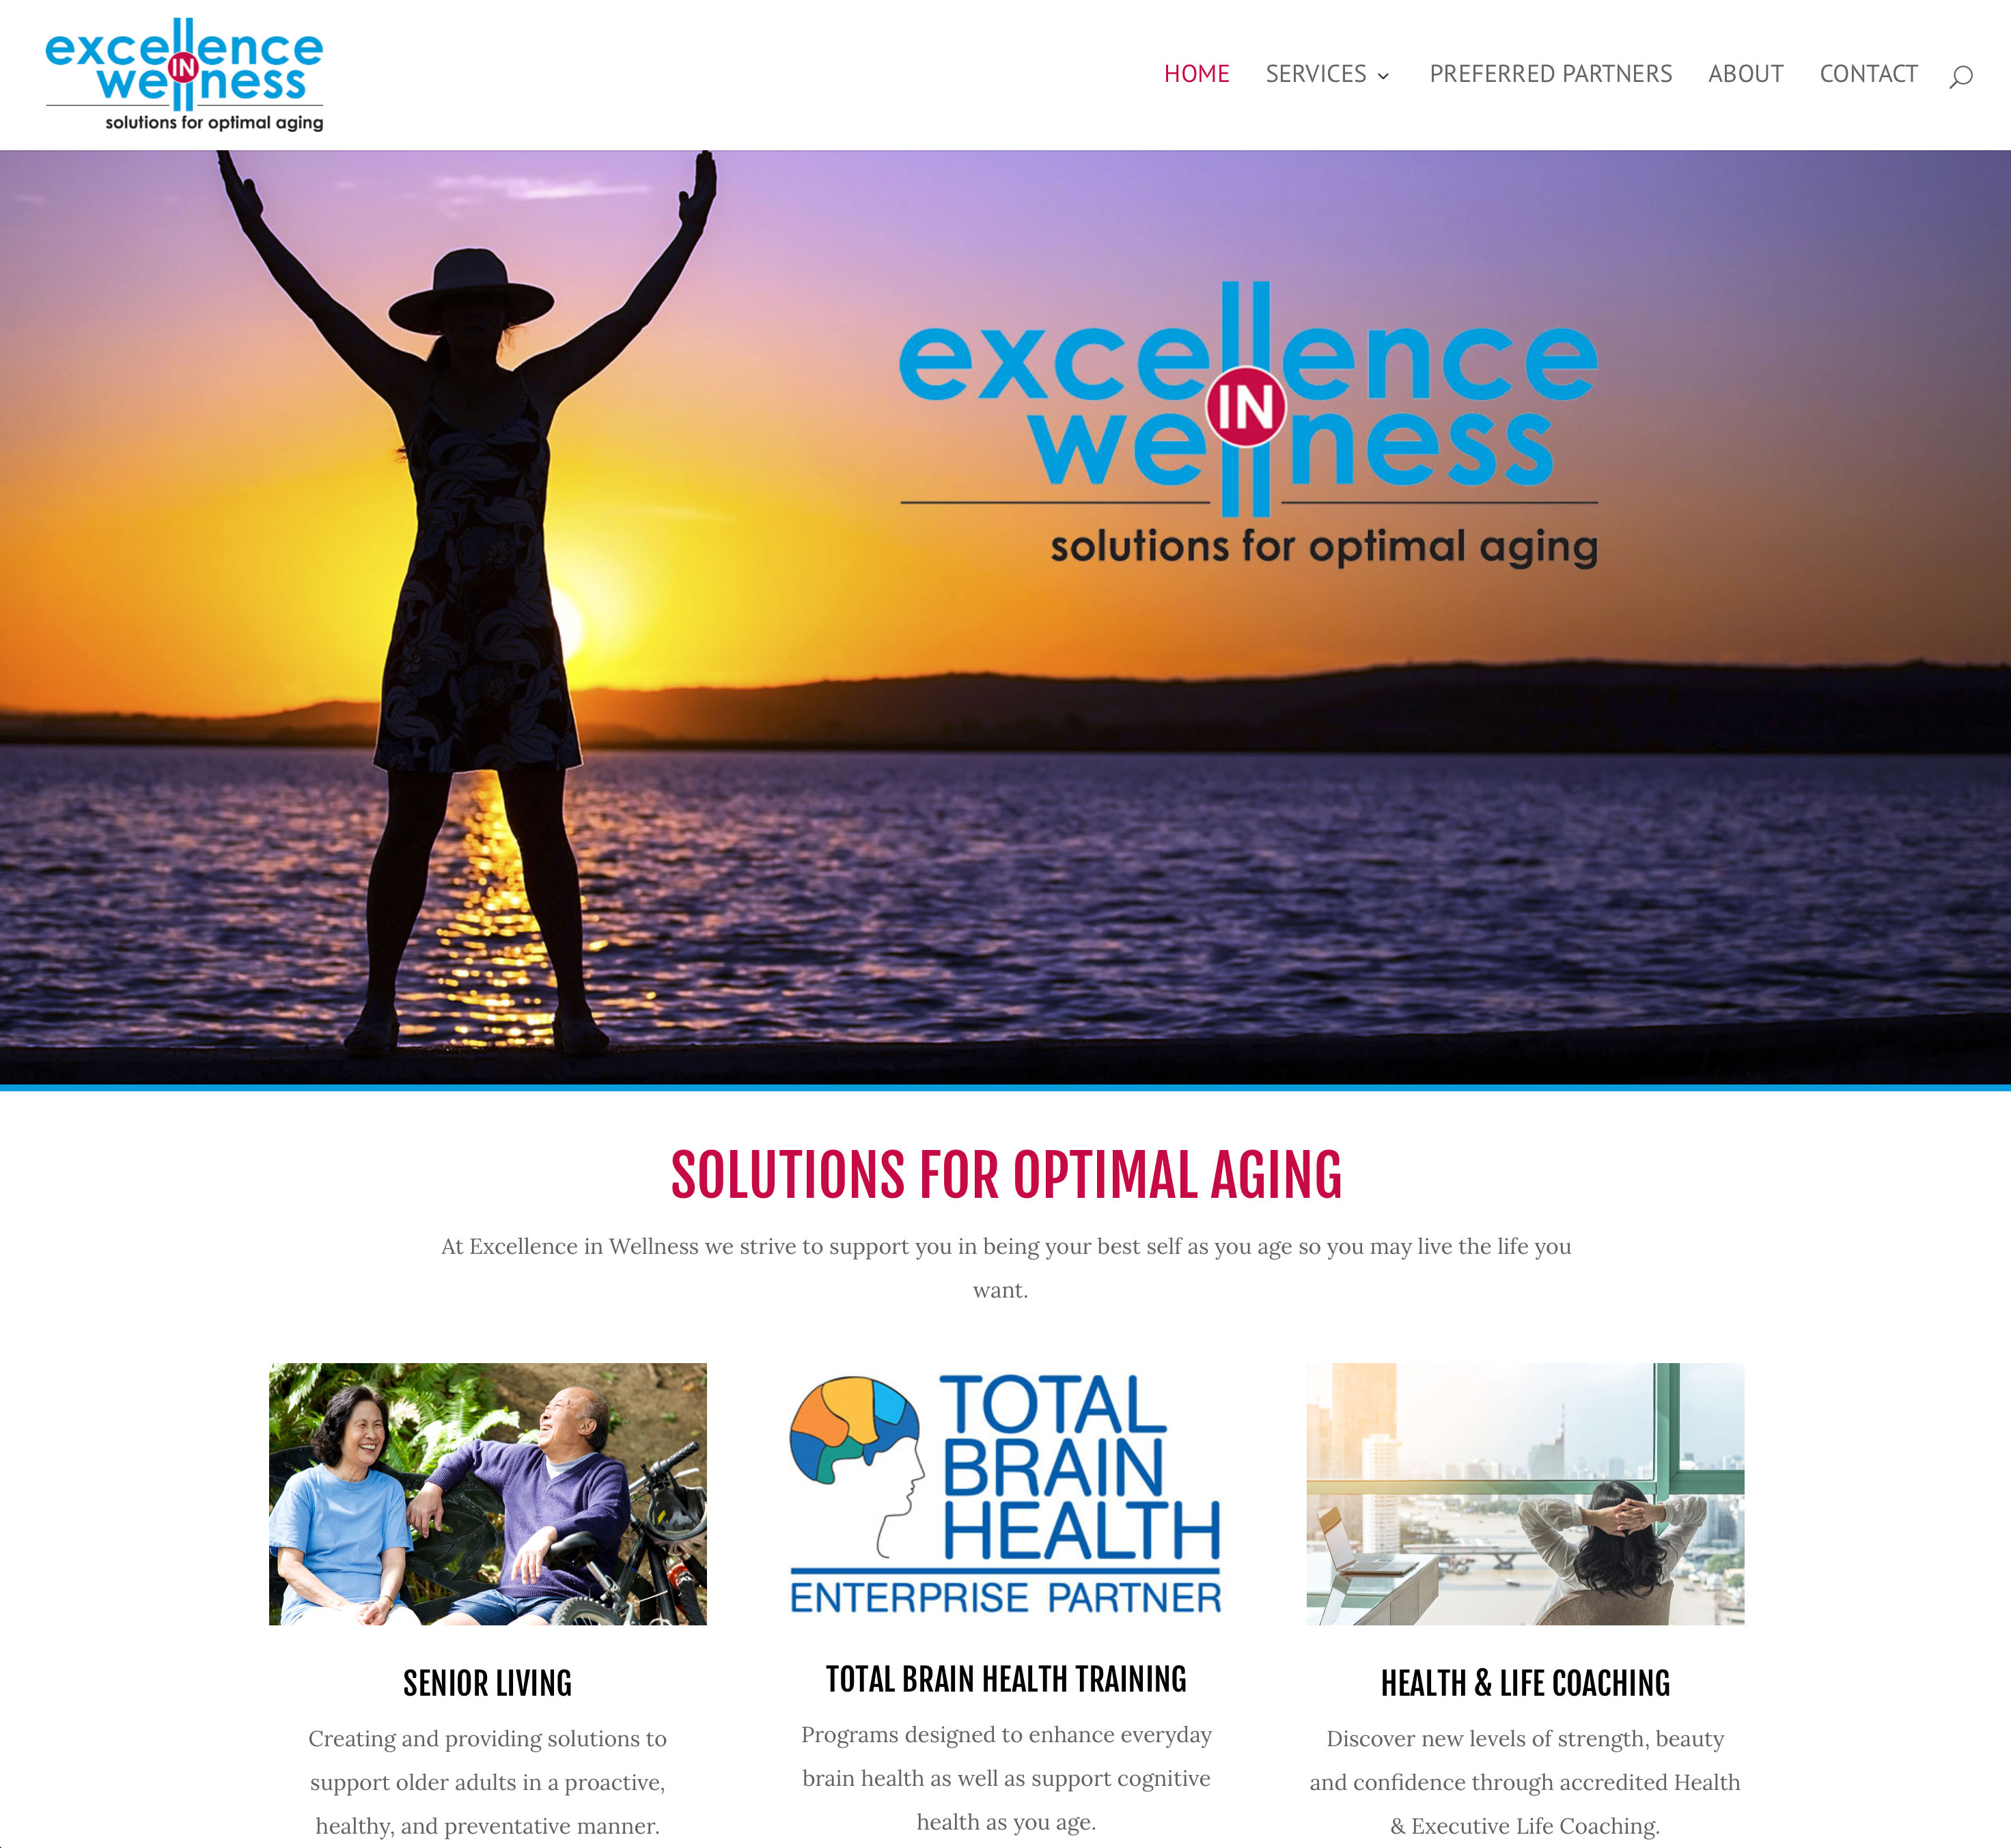 Excellence in Wellness website